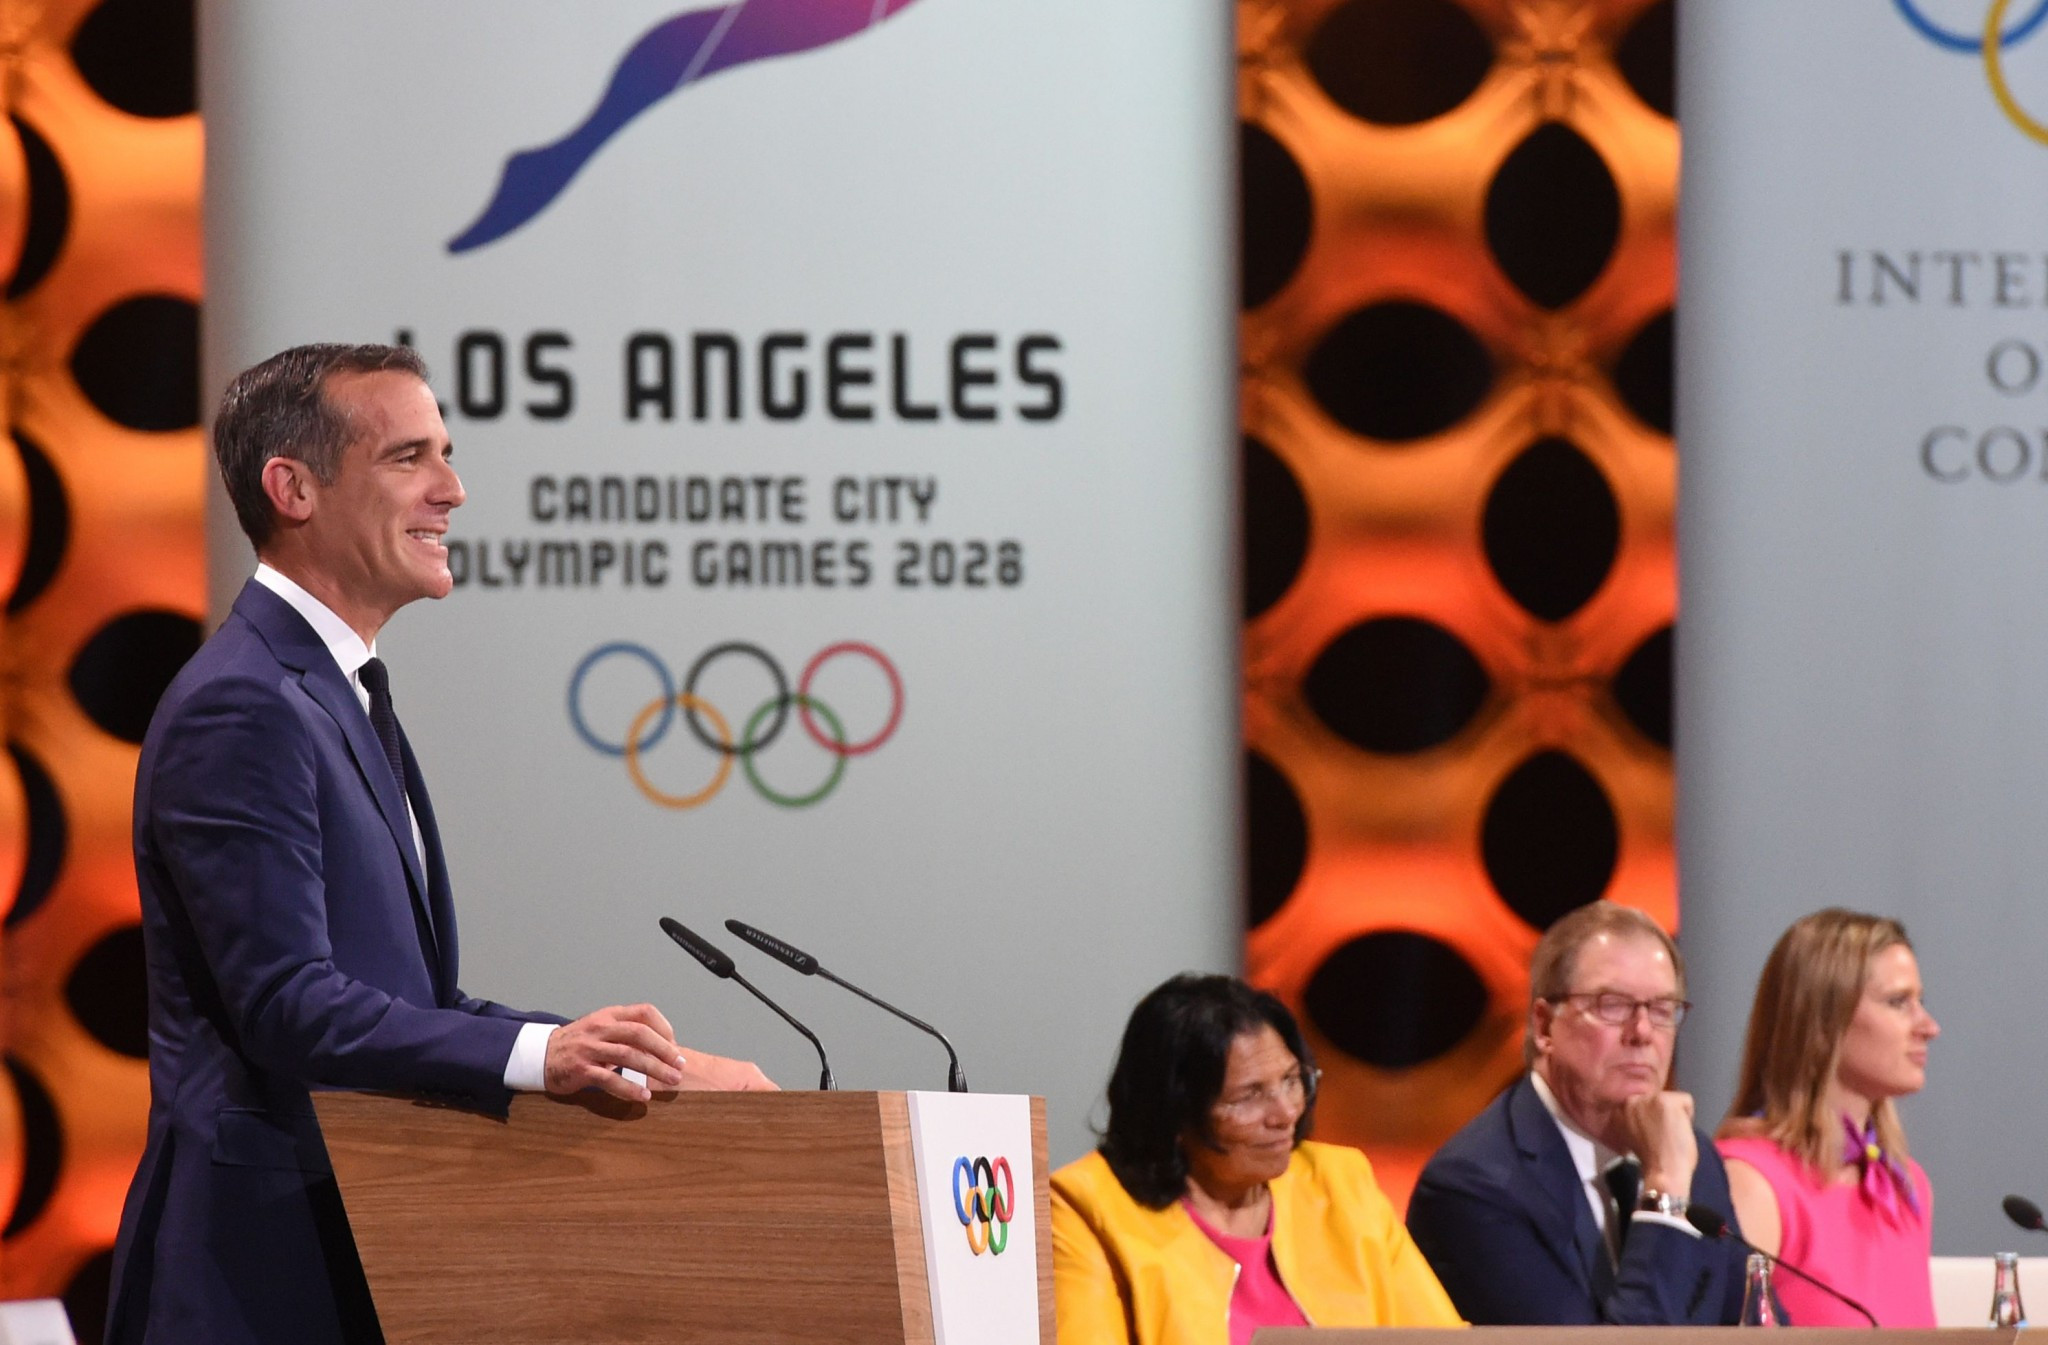 Los Angeles Mayor Eric Garcetti said the city would inspire a generation for the next 11 years ©Getty Images